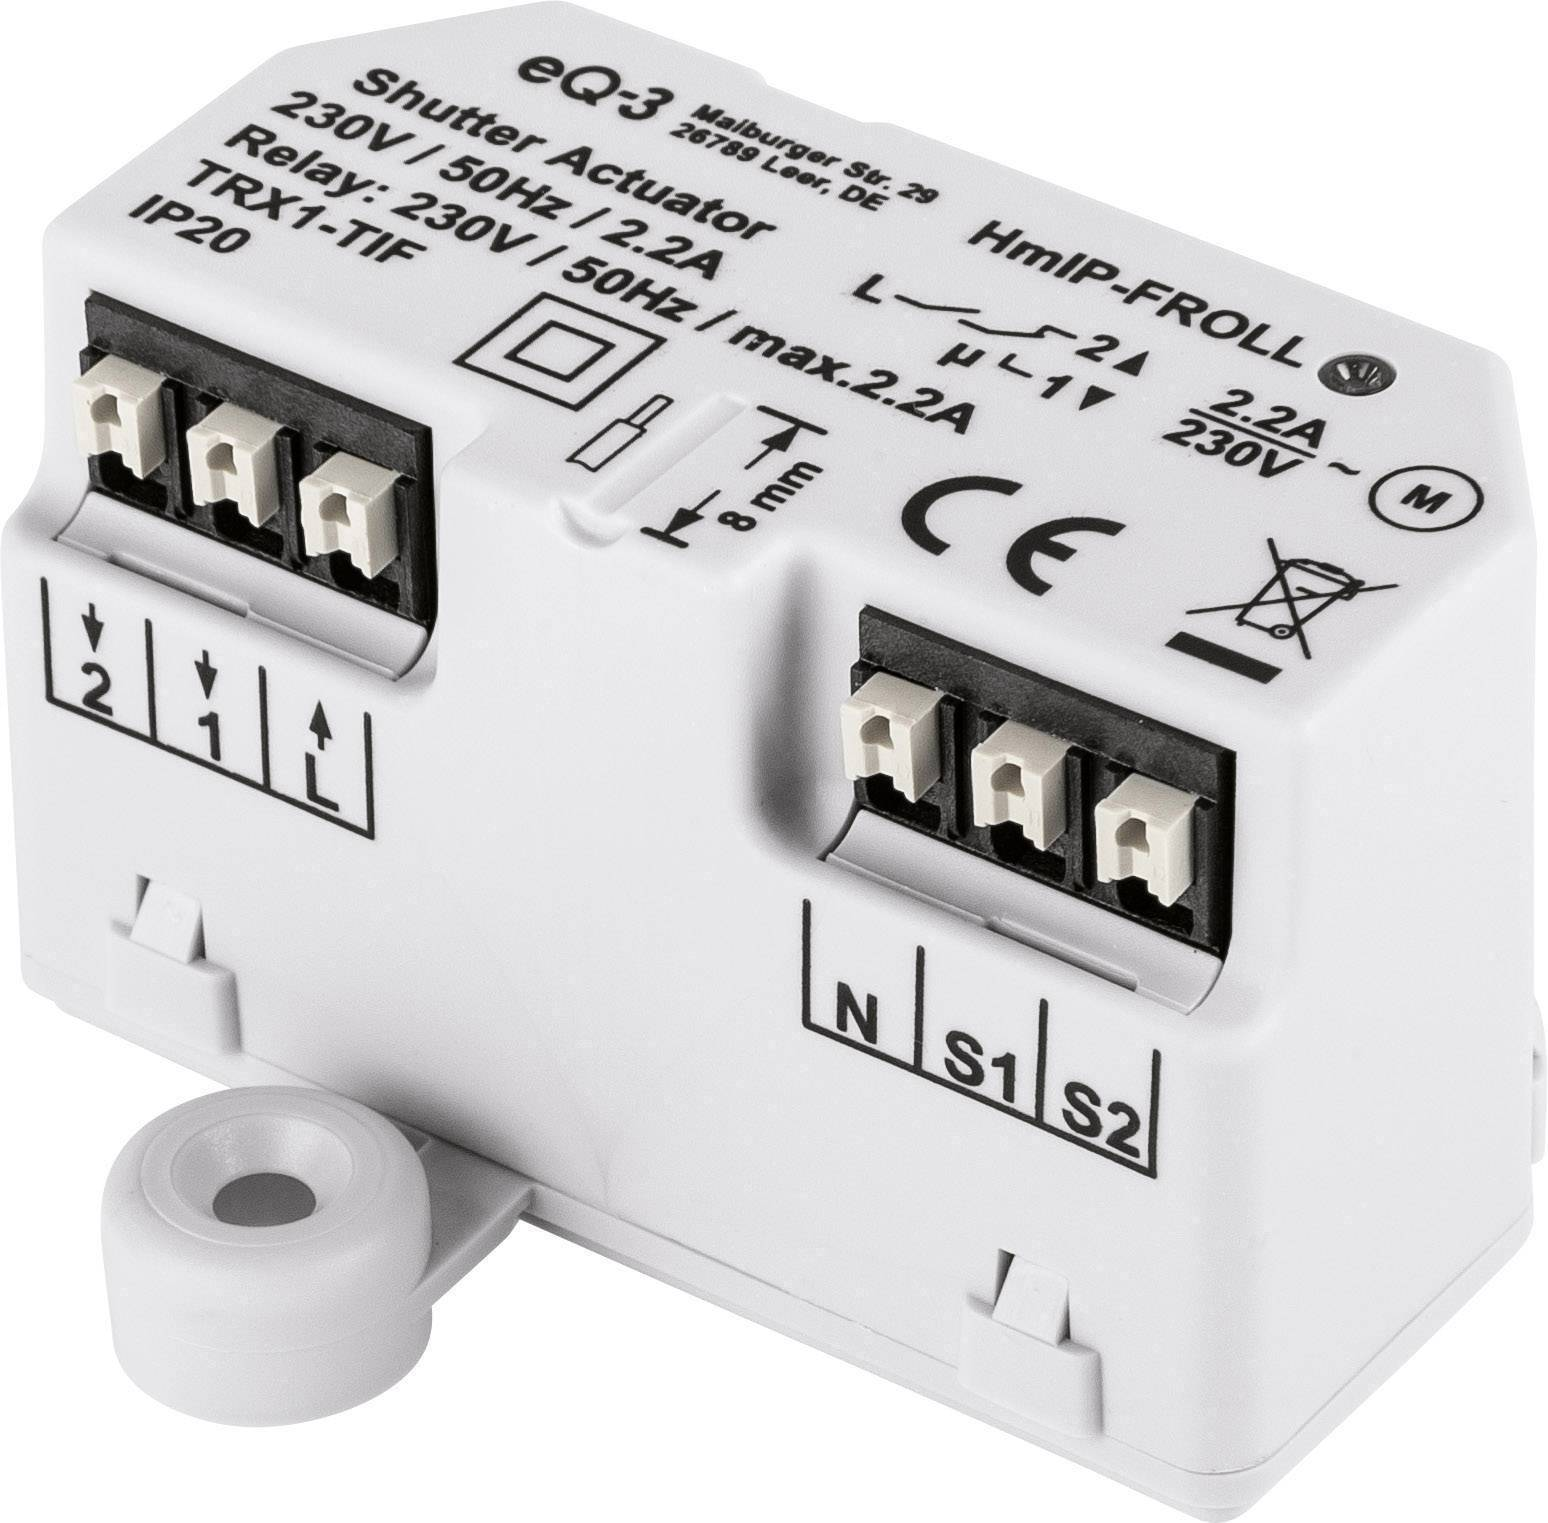 Homematic Interrupteur pour volet roulant sans fil - Homematic Ip